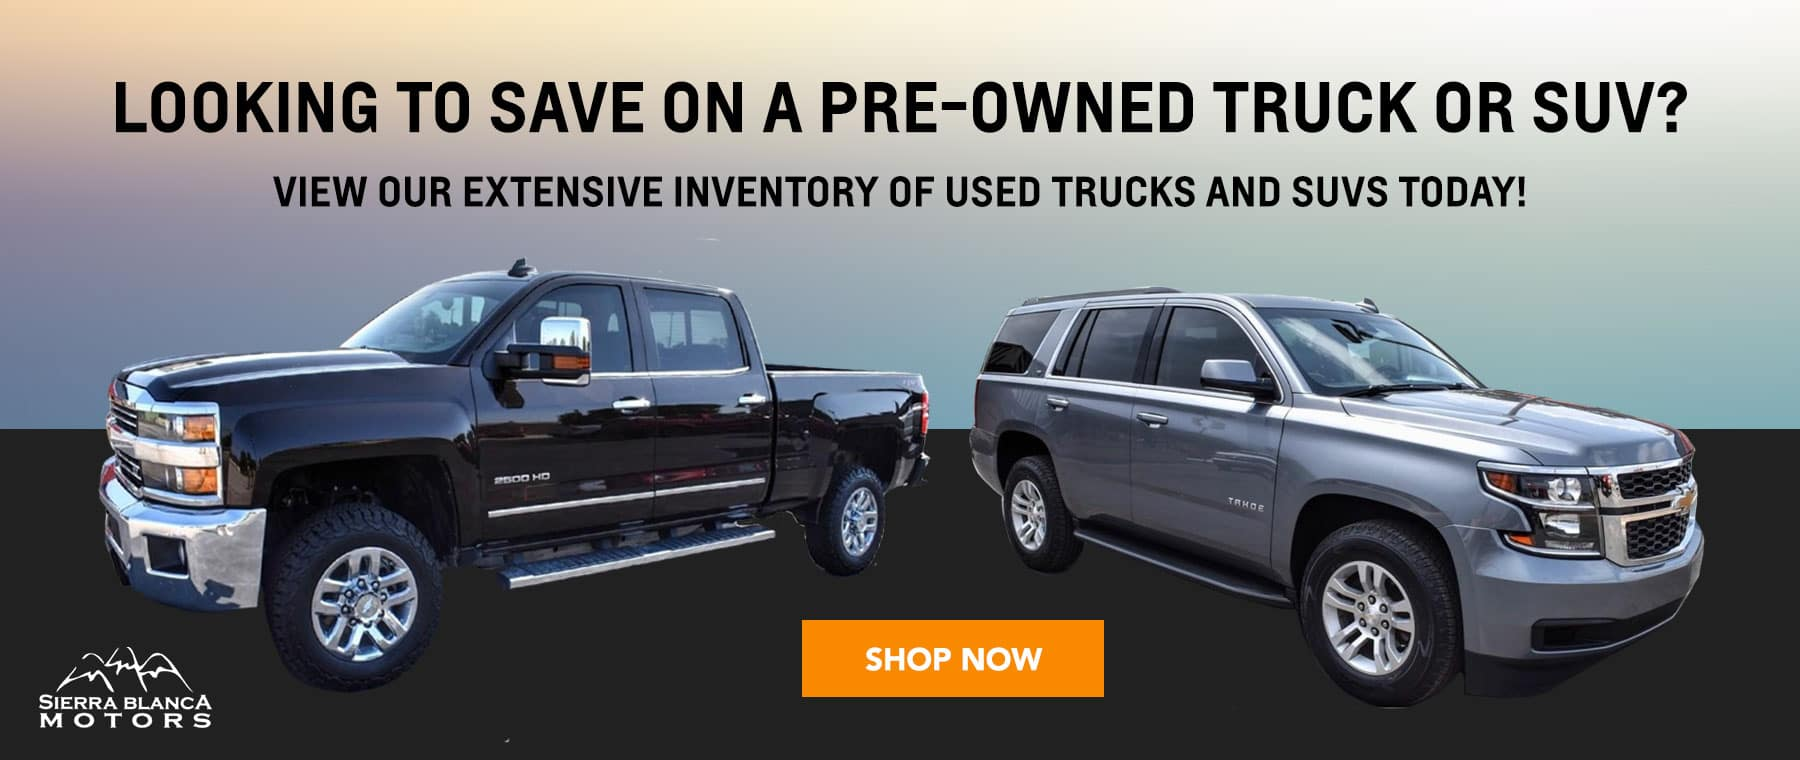 Save on a pre-owned truck or SUV!